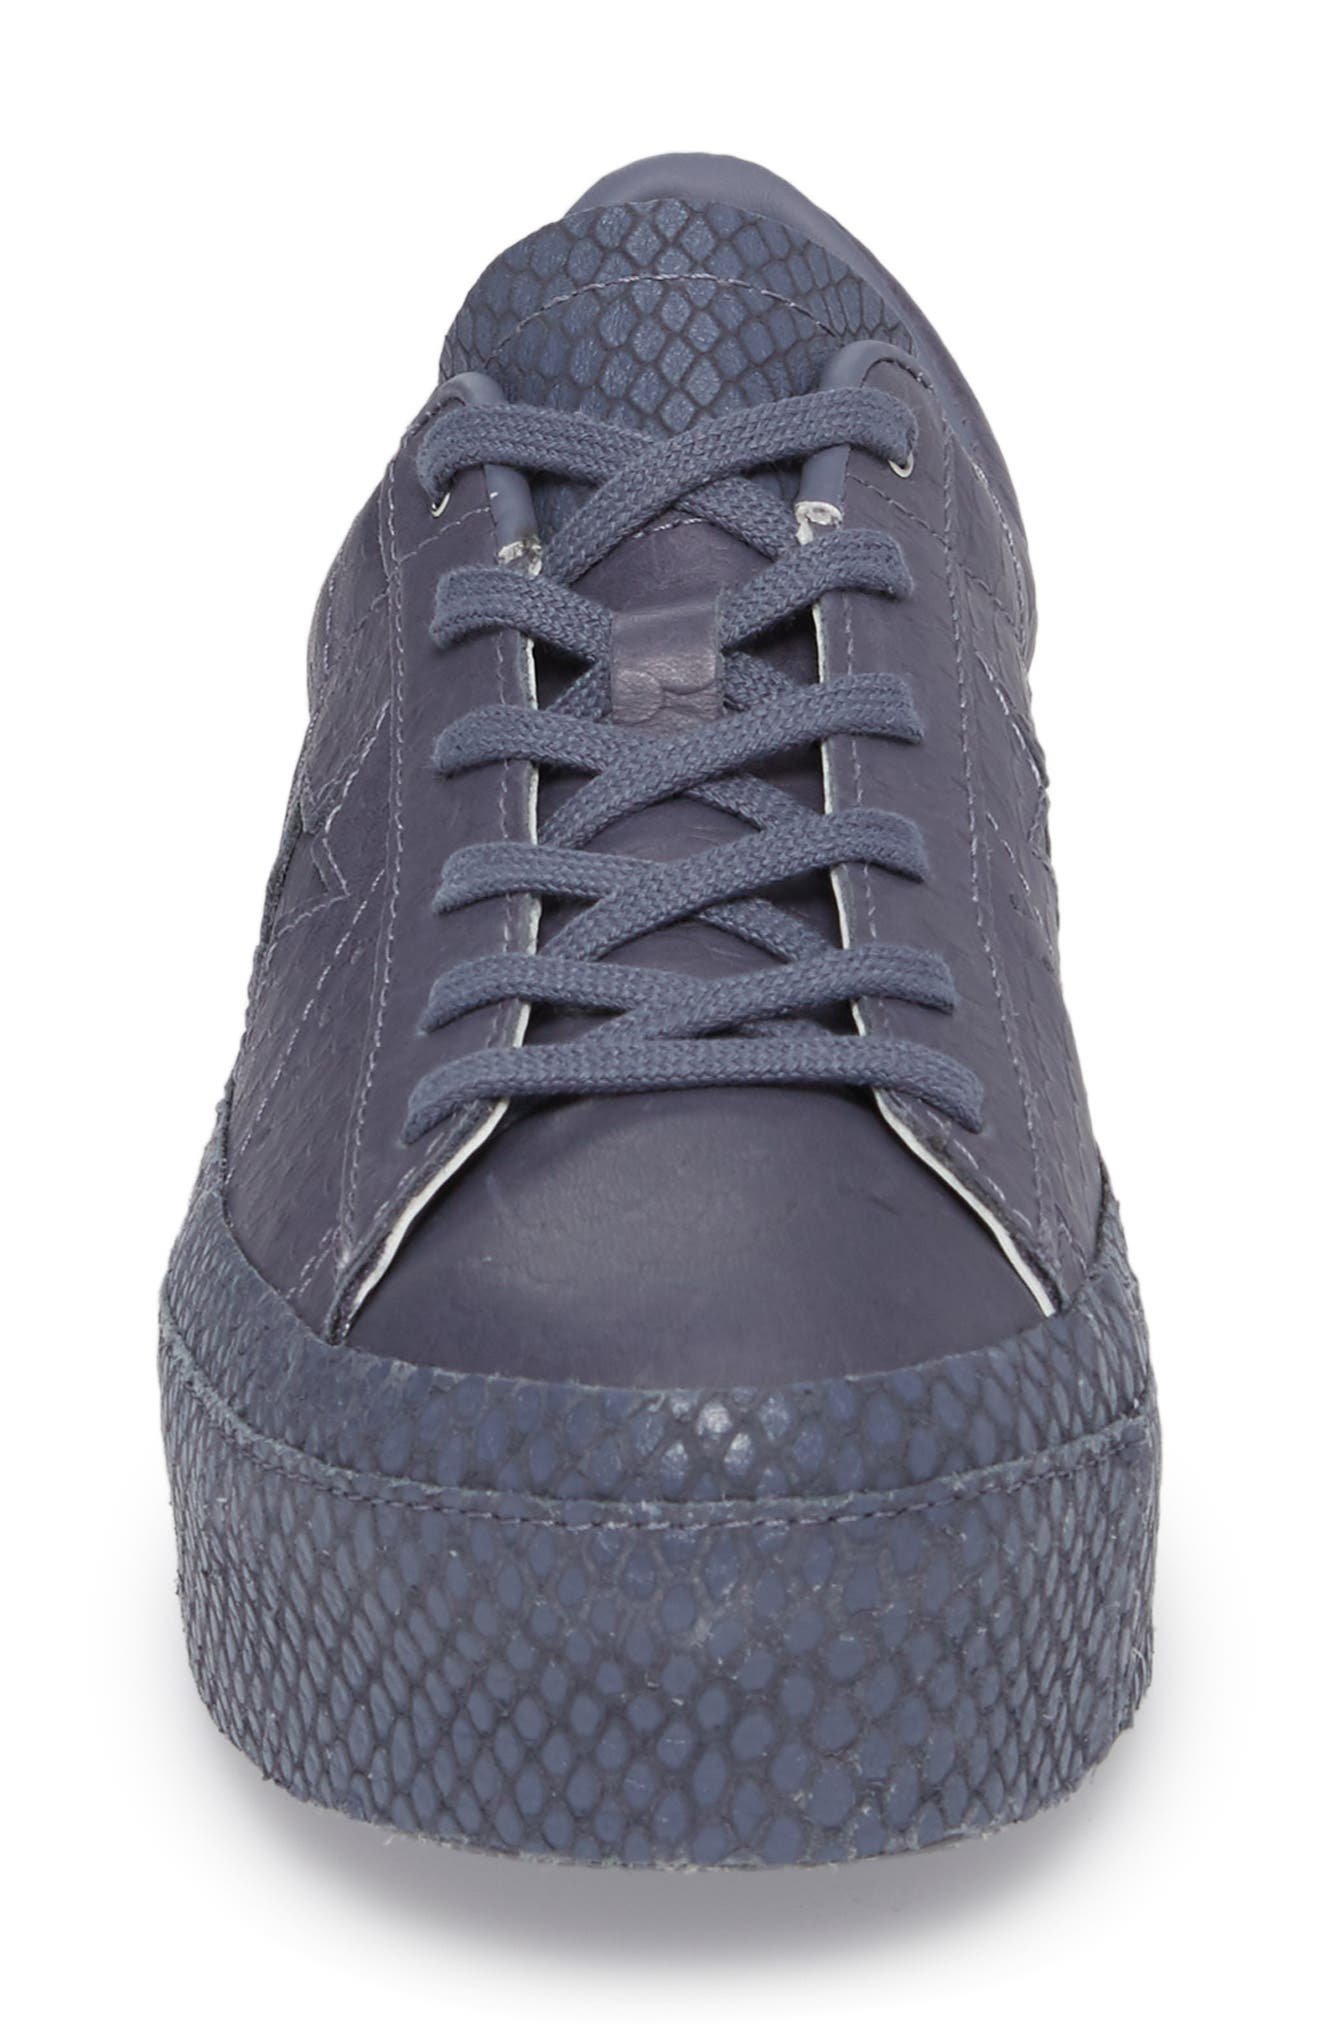 Chuck Taylor<sup>®</sup> All Star<sup>®</sup> One Star Platform Sneaker,                             Alternate thumbnail 4, color,                             450